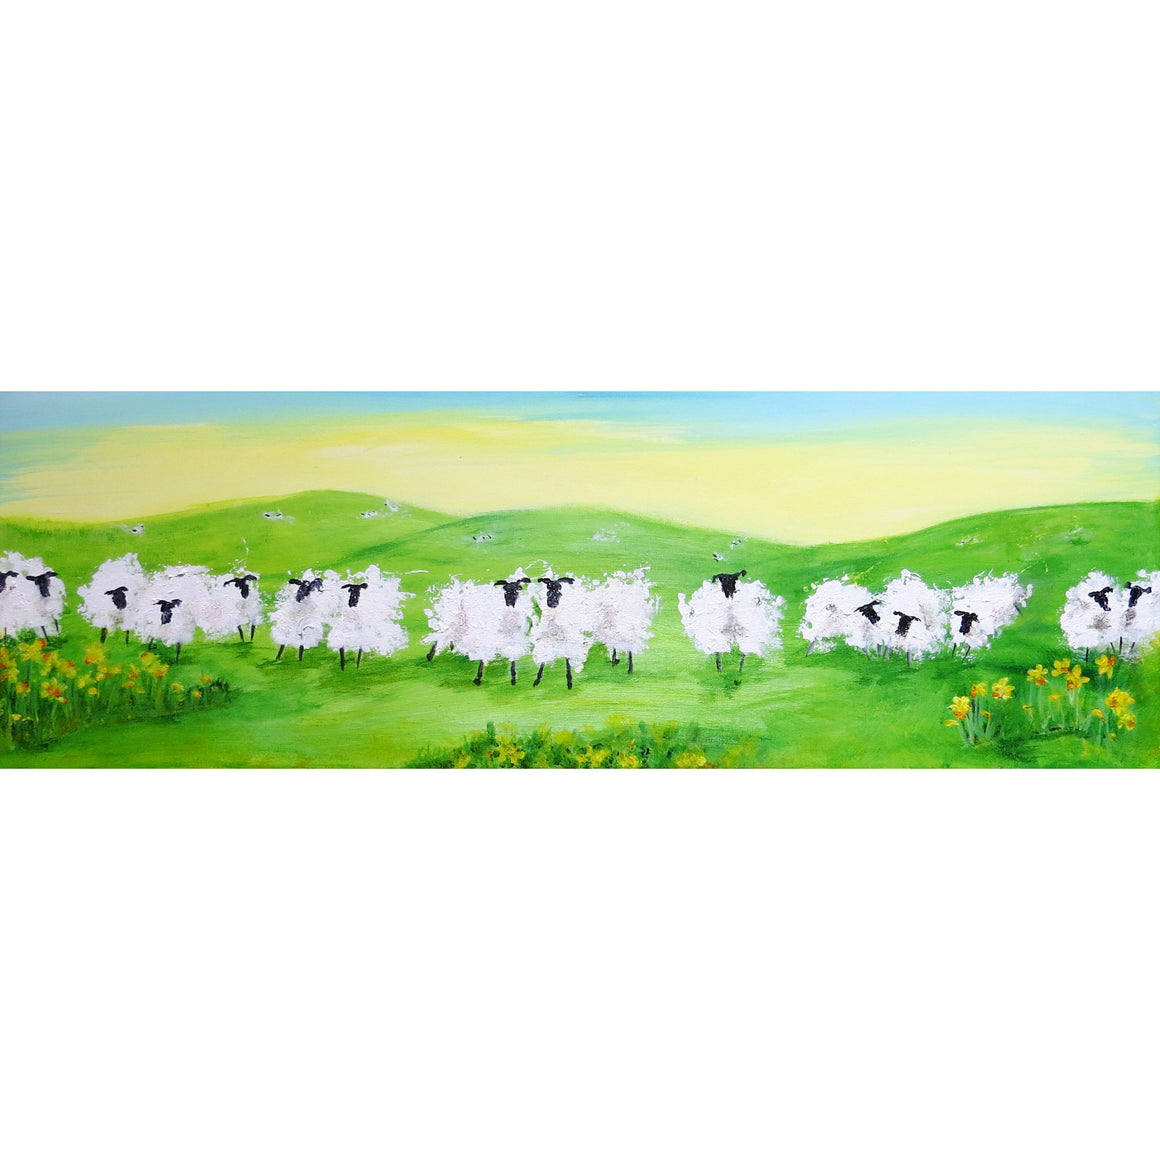 Spring Sheep 18x6 and 6x6 canvas prints